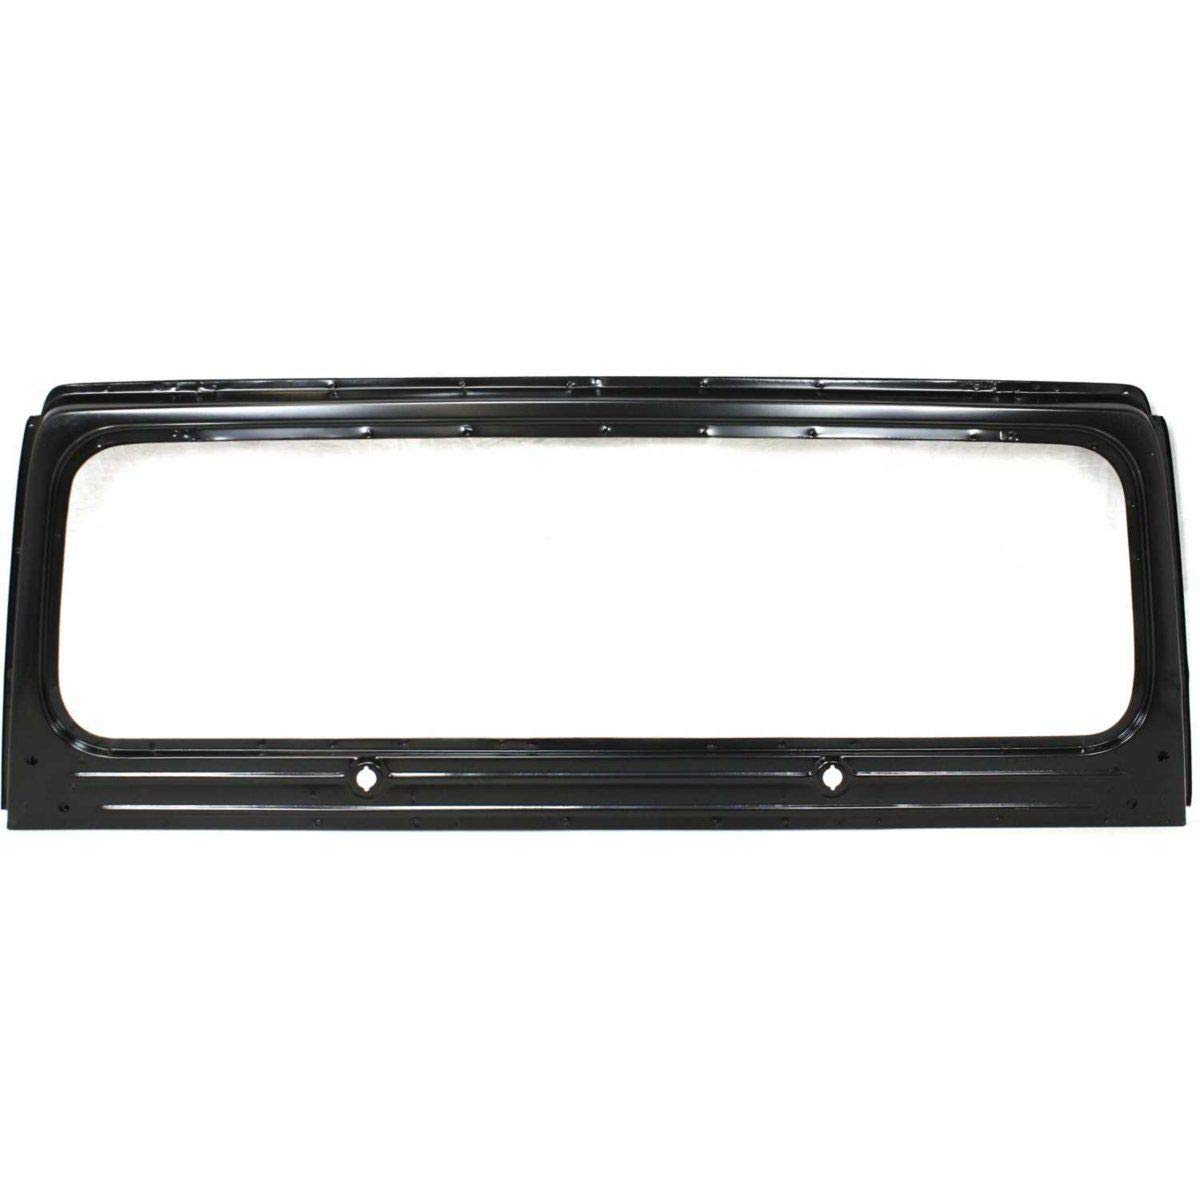 New Windshield Frame For 1997-1995 Jeep Wrangler CH1280101 55174576 by Fitrite Autoparts